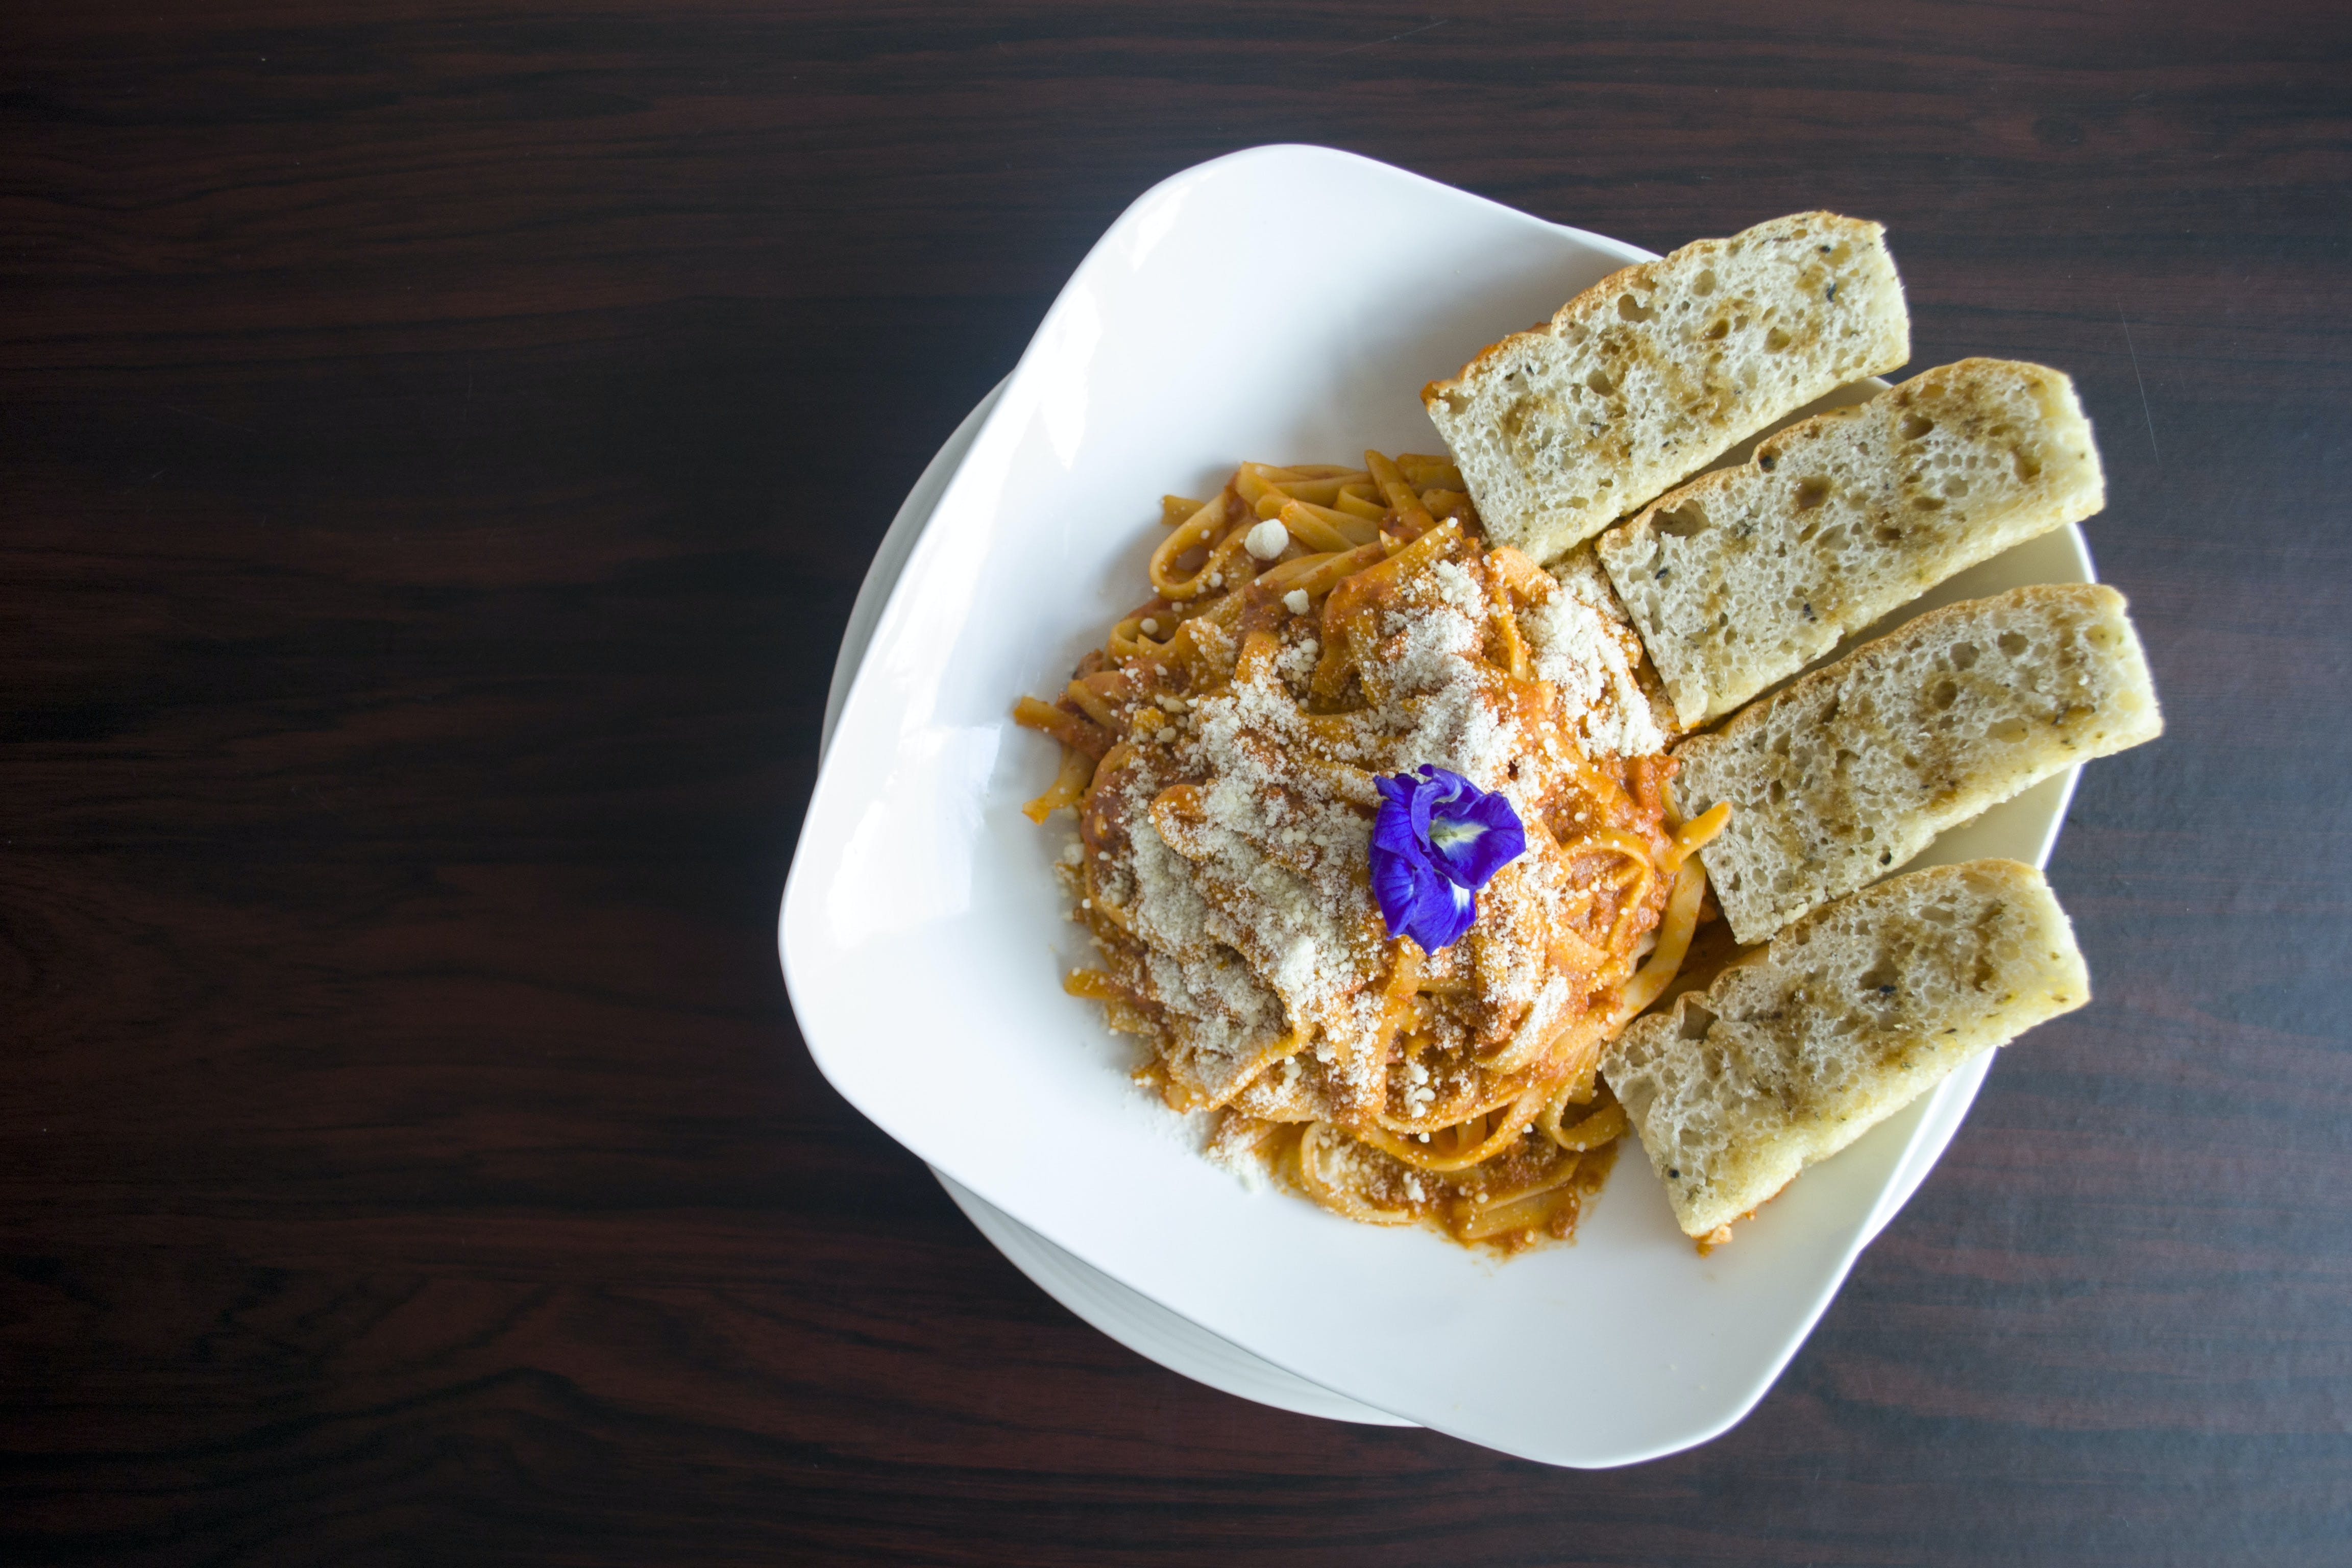 Photography of Pasta with Garlic Bread